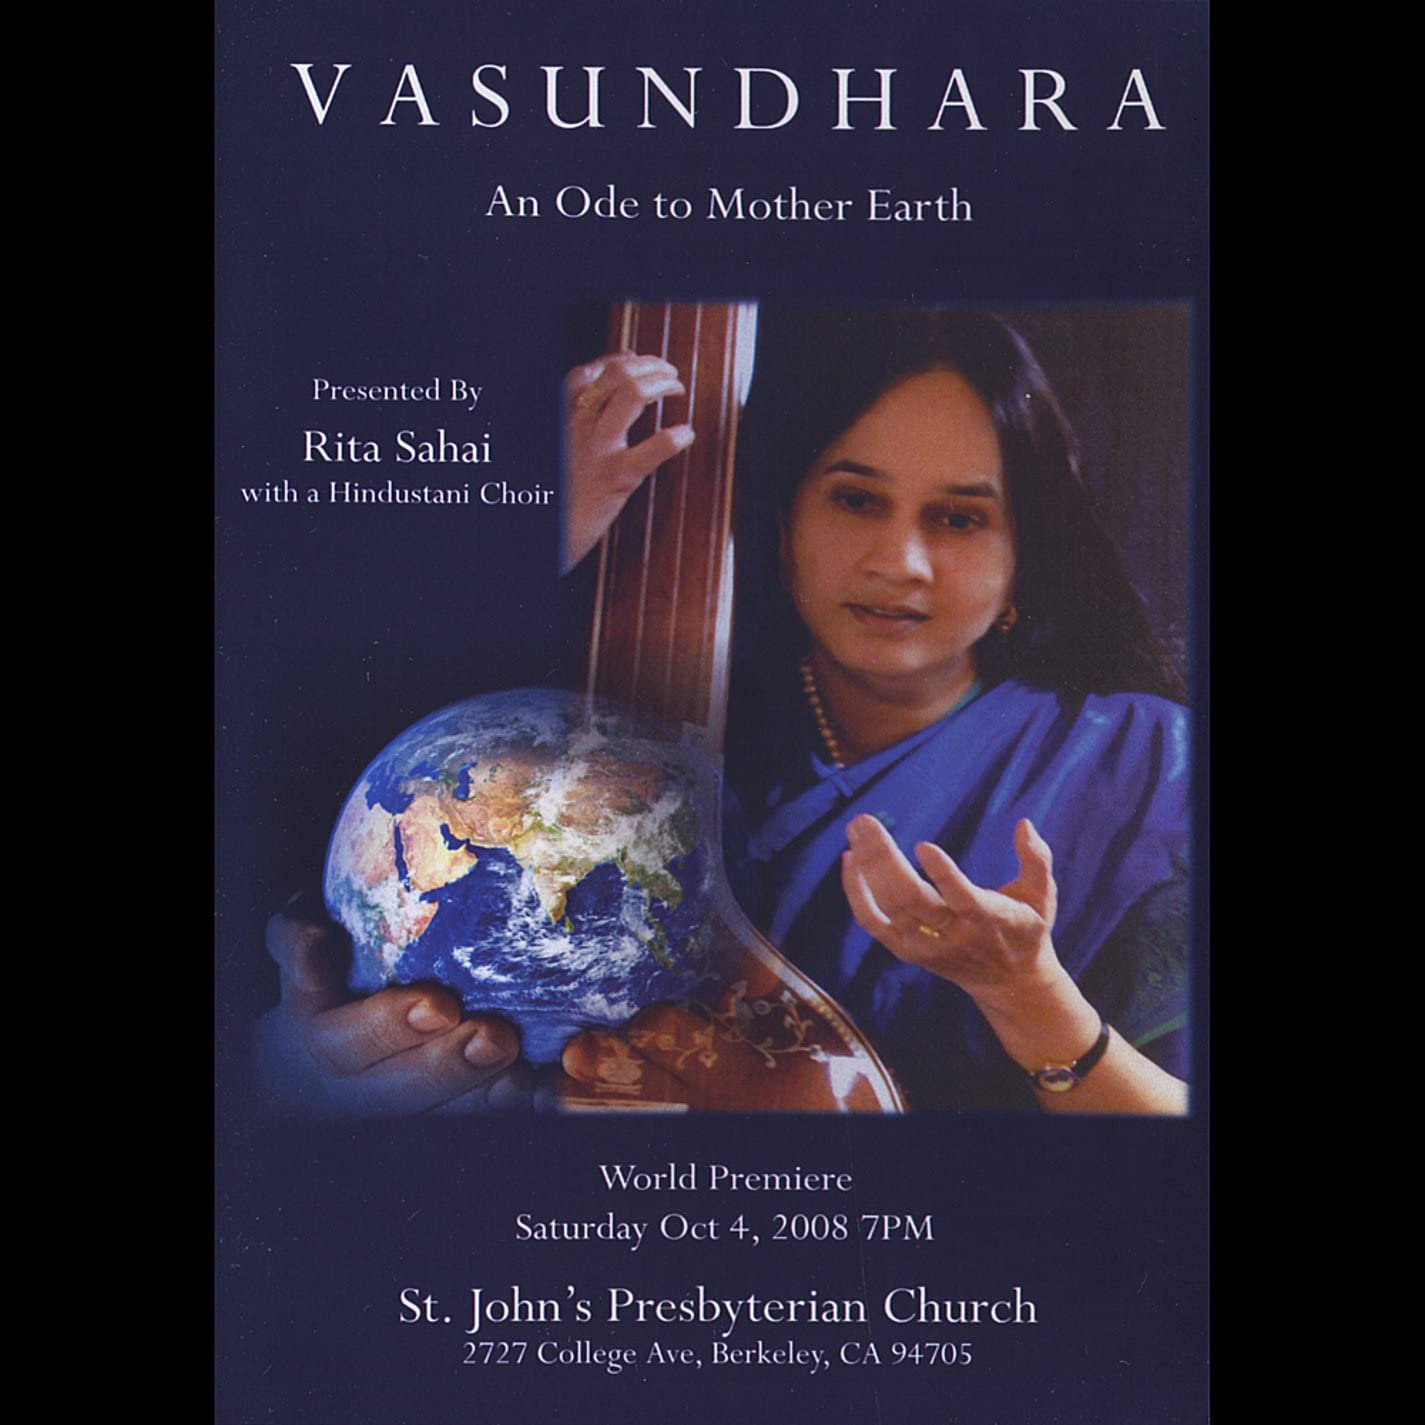 Vasundhara: An Ode to Mother Earth [DVD] [Import]